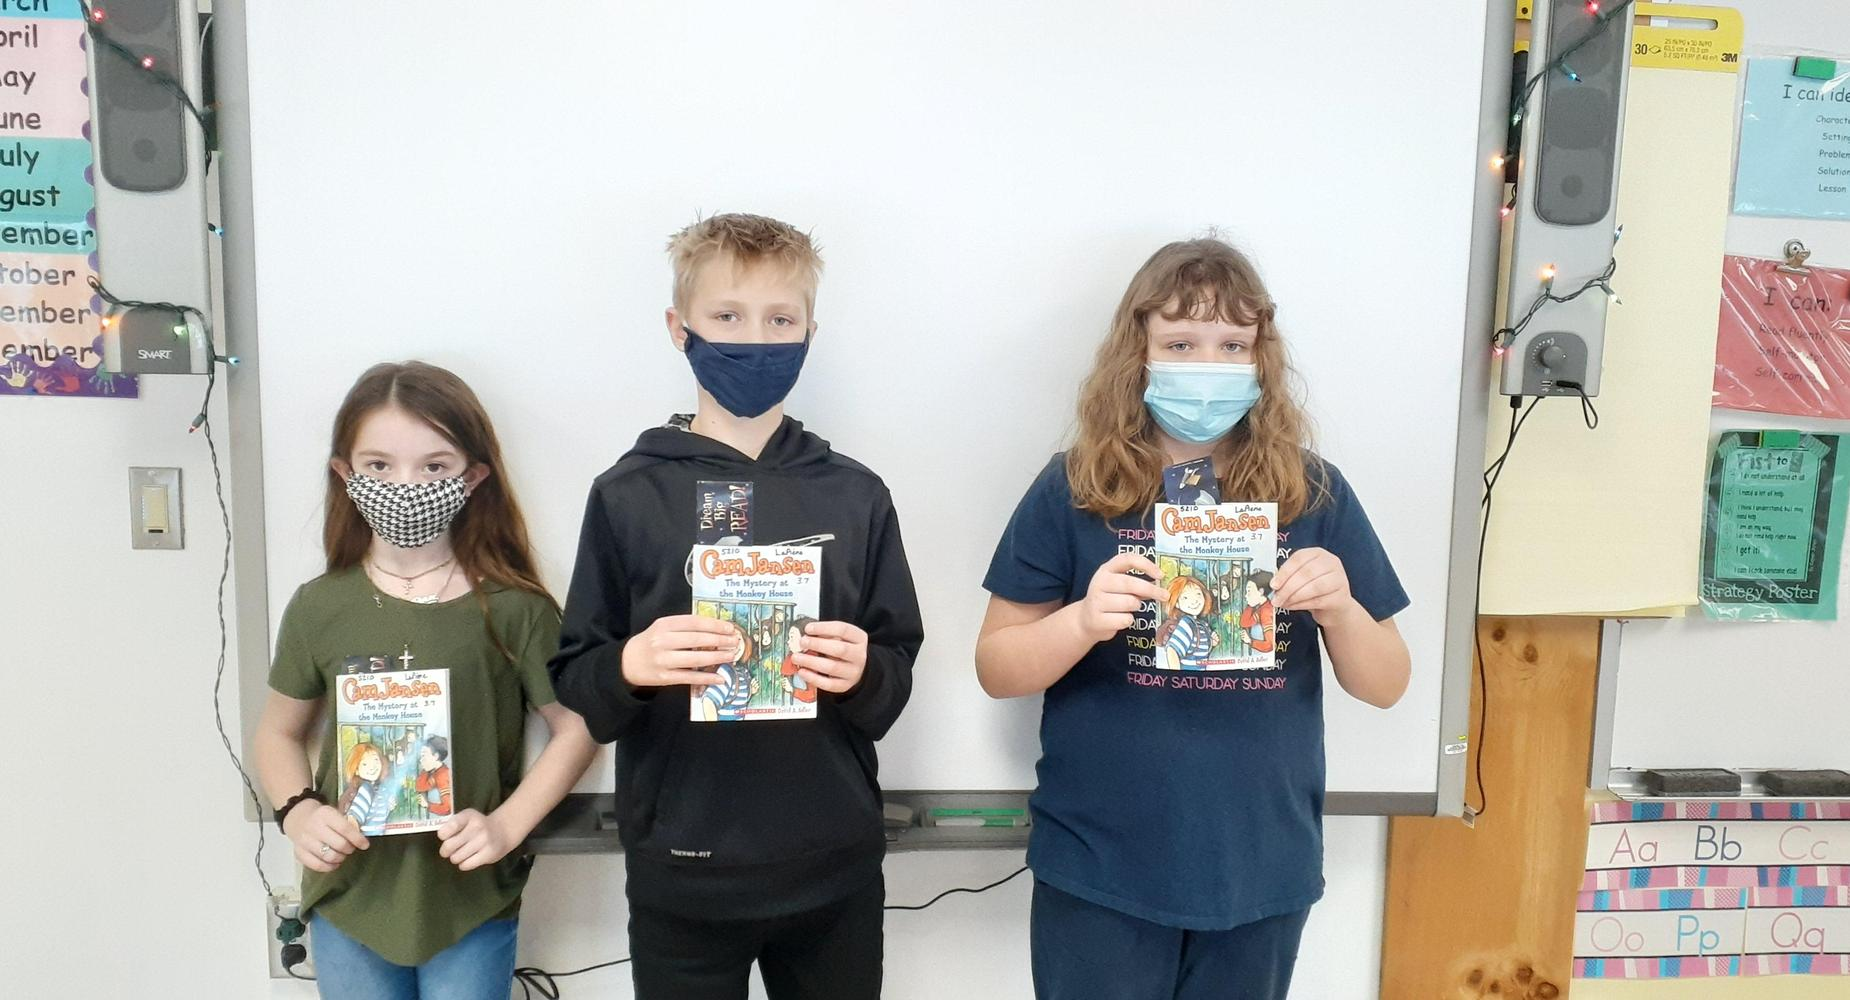 Students holding books.